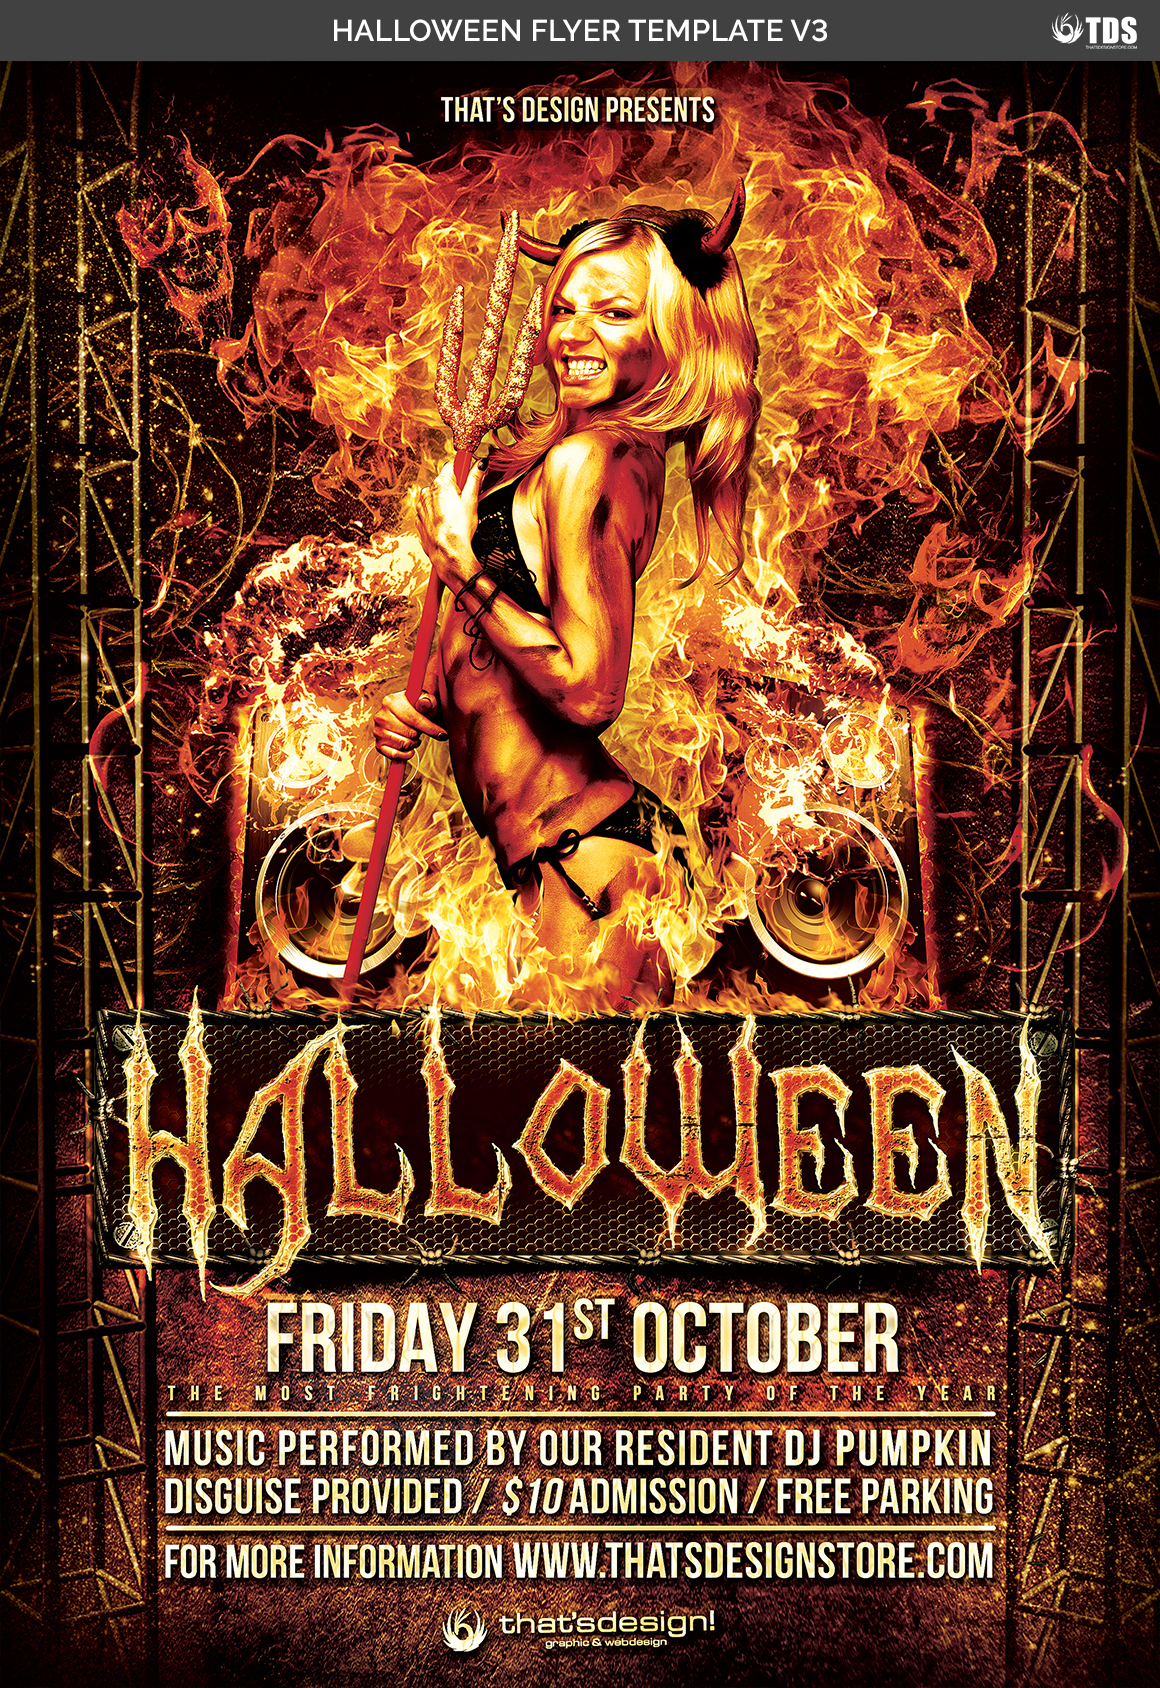 Halloween Flyer Template V3 example image 7